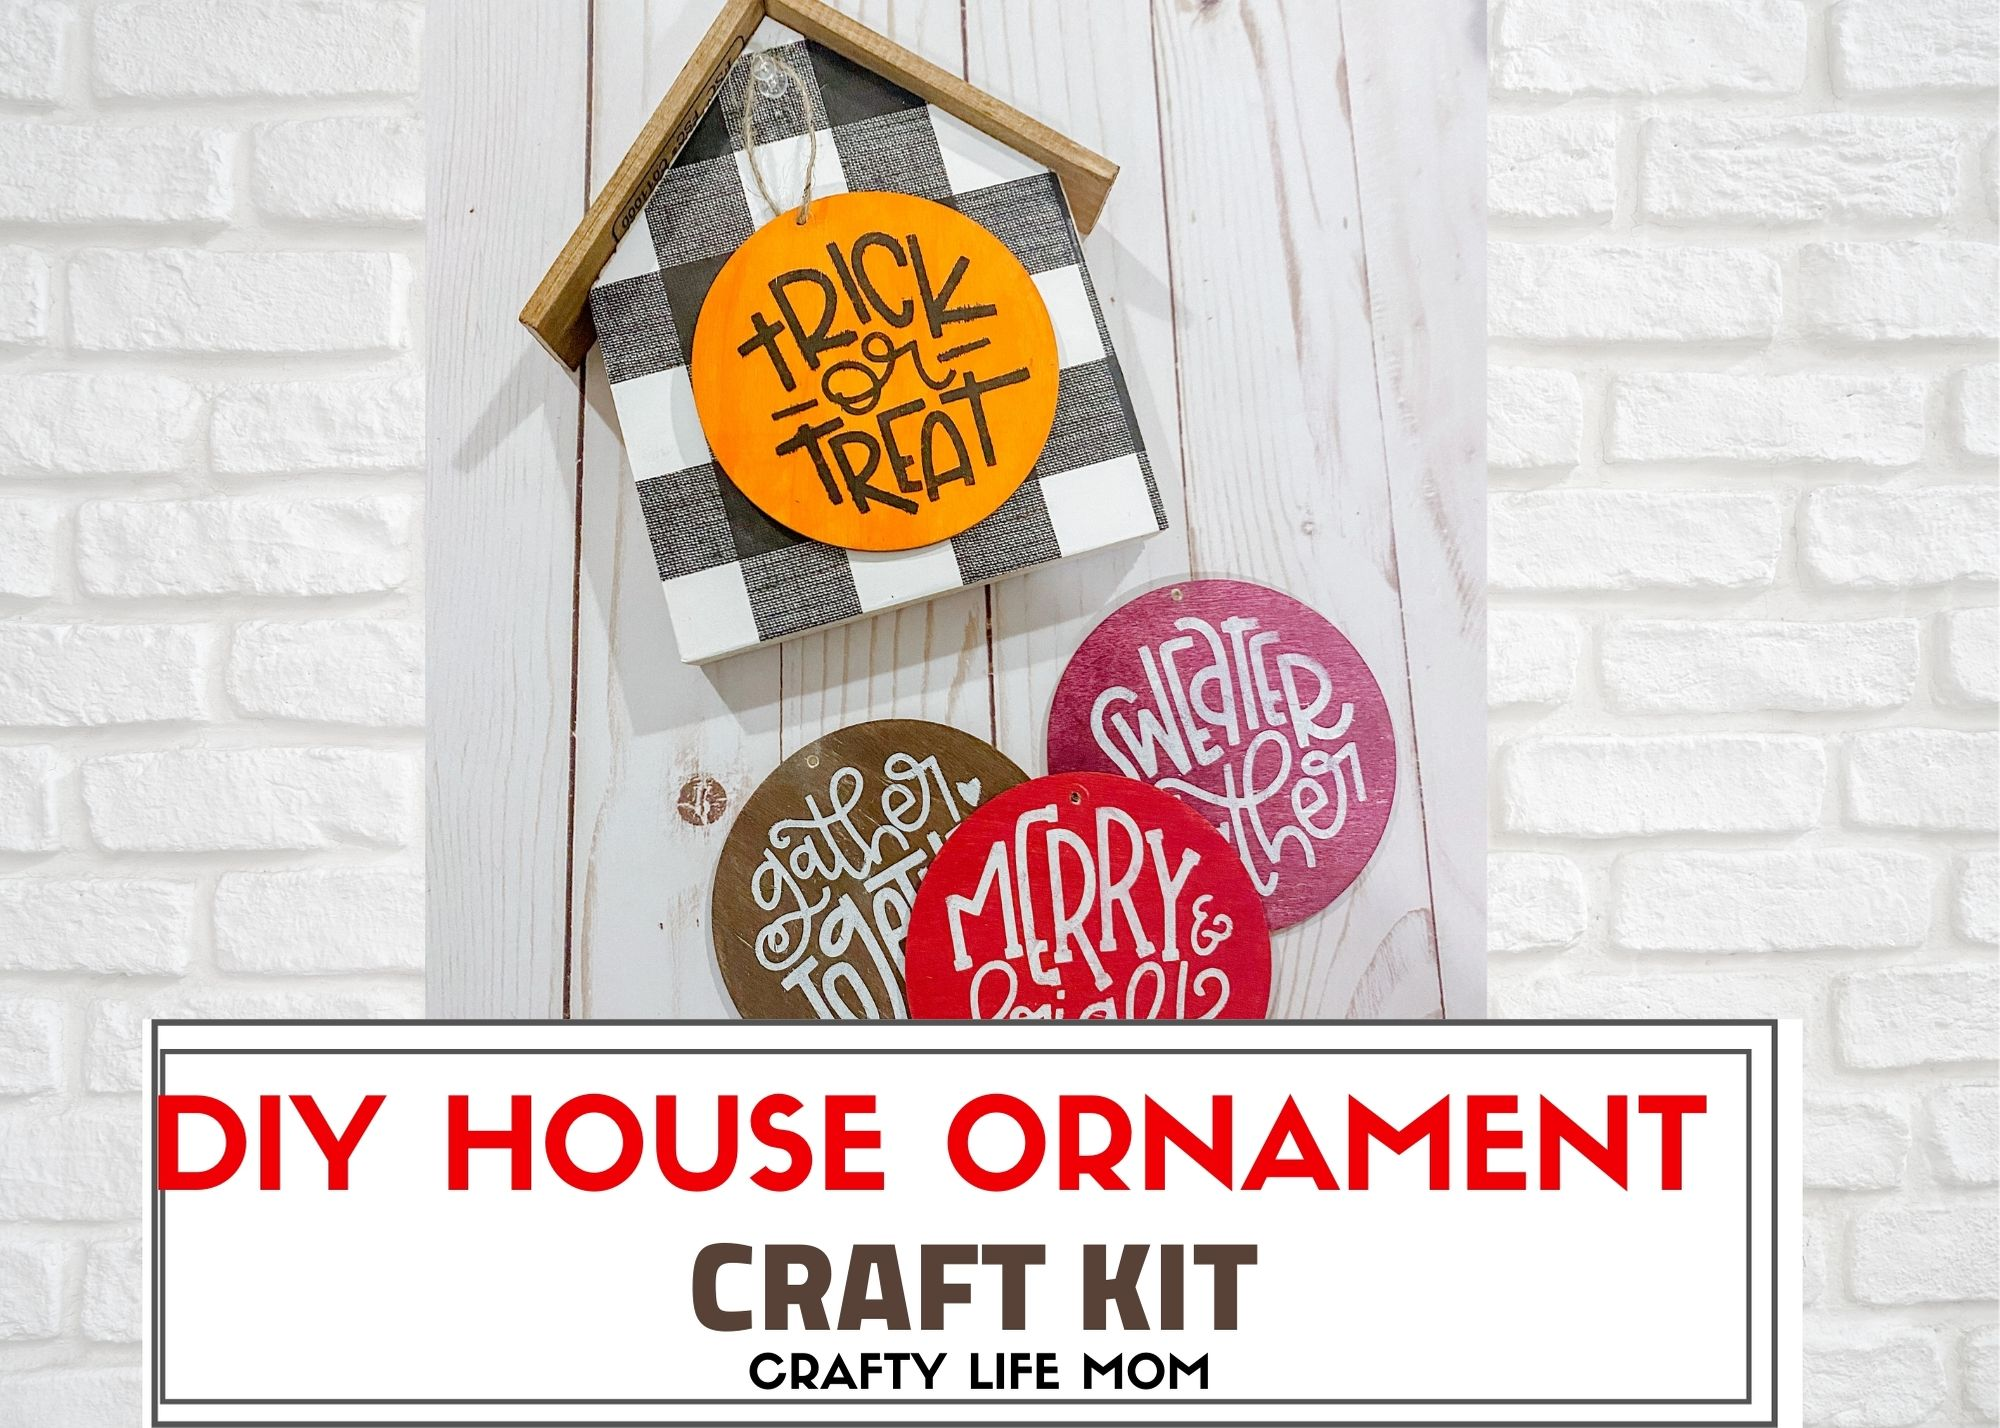 Create this cute DIY Ornament House using this easy to follow craft kit and simple stenciling technique. This kit has everything you need to make the interchangeable ornaments for the upcoming holiday seasons.